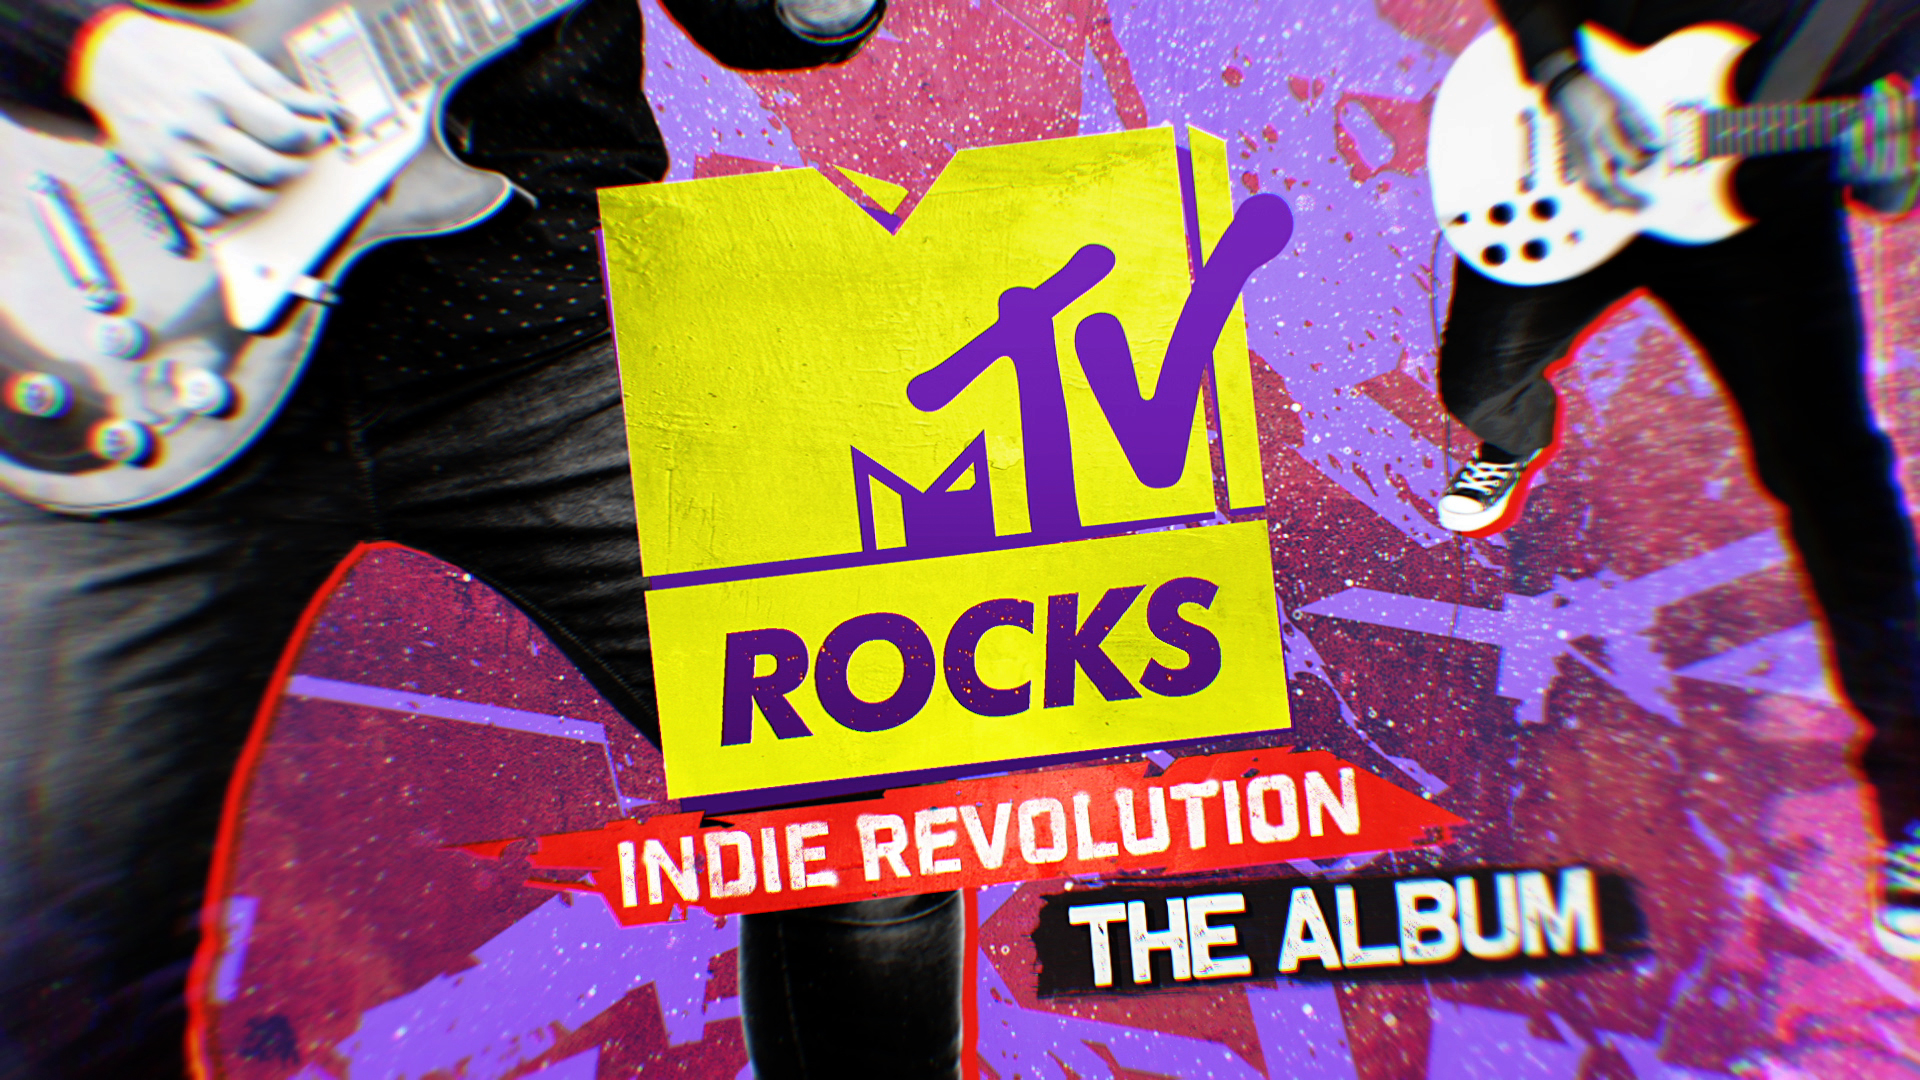 MTV Rocks Indie Revolution